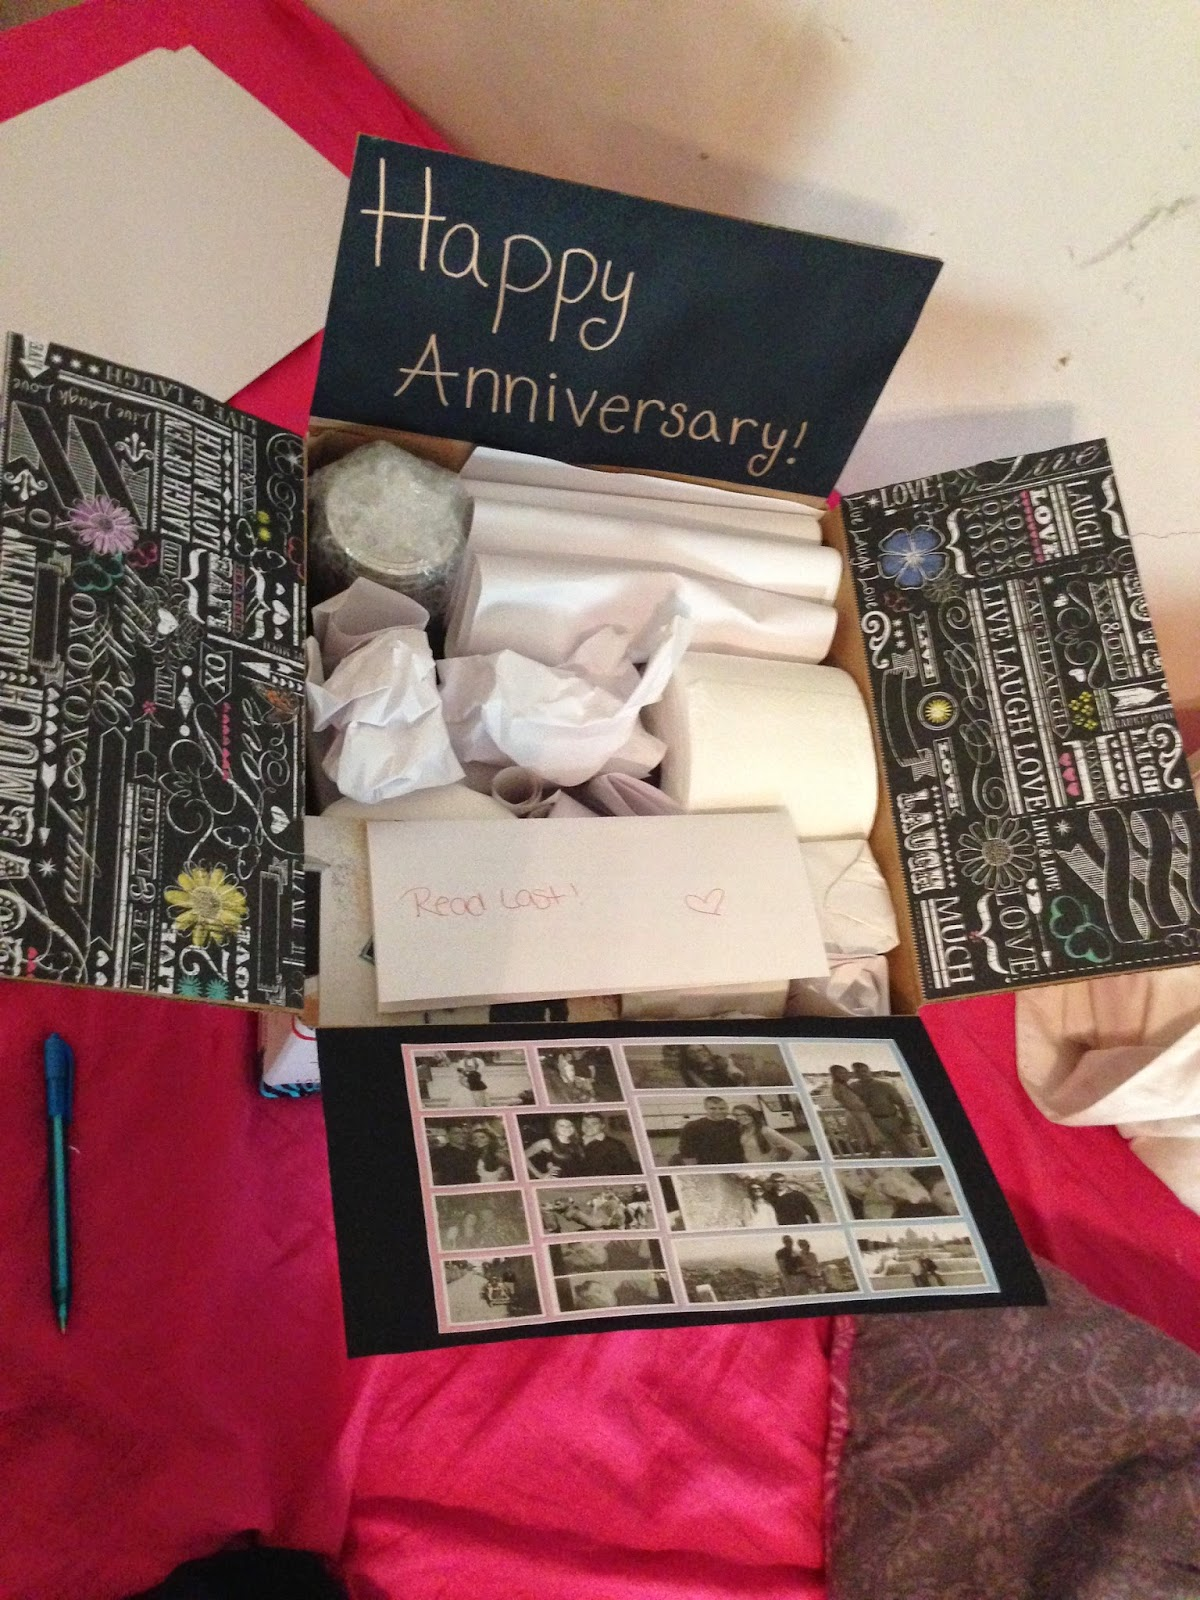 Thoughtful diy gift ideas for your tin anniversary What is the 4 year wedding anniversary gift